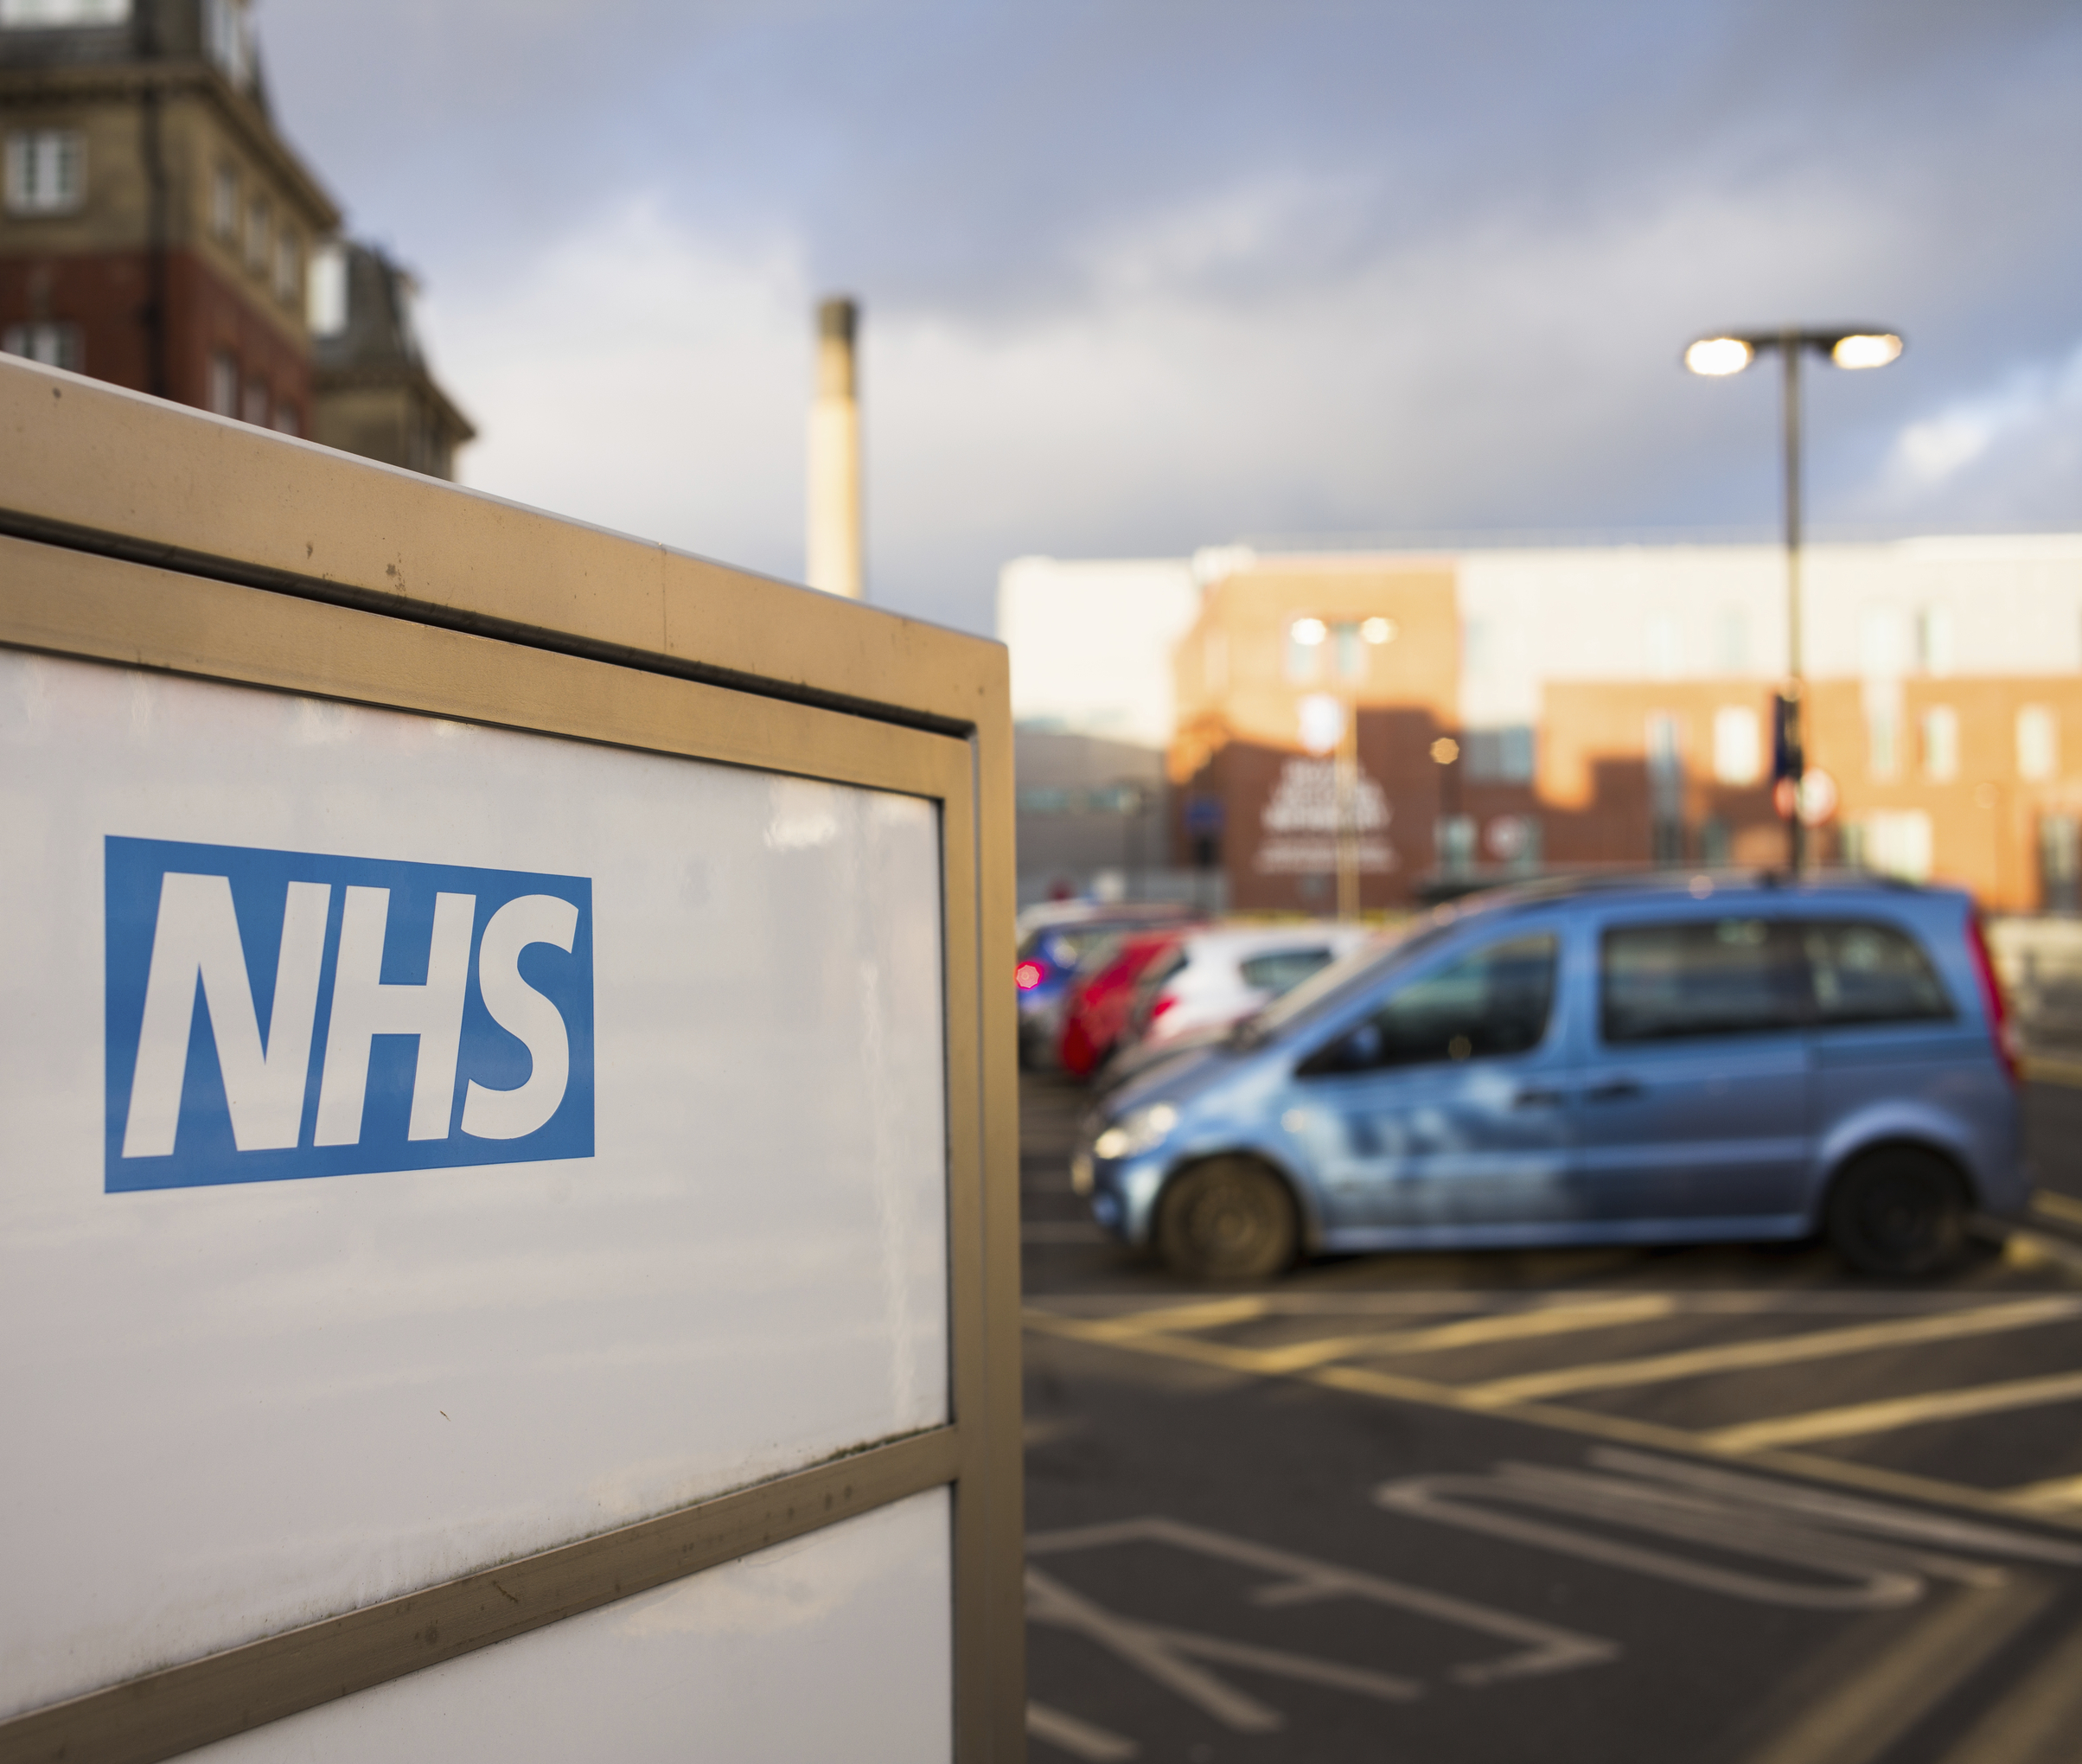 Newcastle, UK - February 10, 2016: The NHS (National Health Service) logo on an entrance sign for the Royal Victoria Infirmary, a teaching hospital which includes an accident and emergency department.